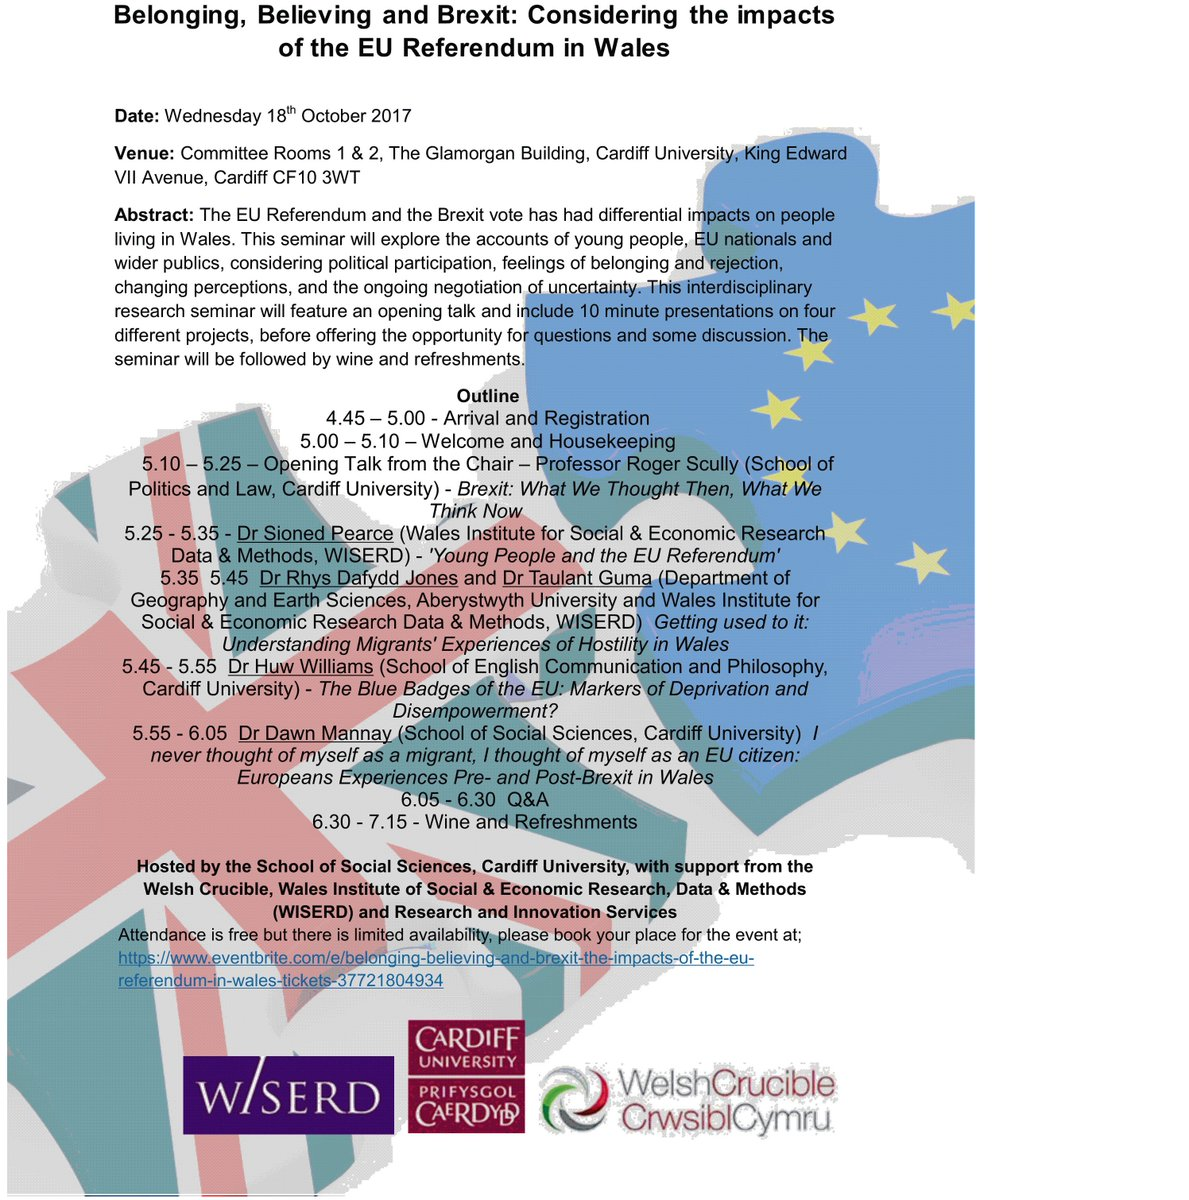 Belonging, Believing &amp; #Brexit: Considering the impacts of the #EURef in Wales, 18 Oct @cardiffuni – book your place  http:// bit.ly/2jJPMaf  &nbsp;  <br>http://pic.twitter.com/QszNDsPHDi